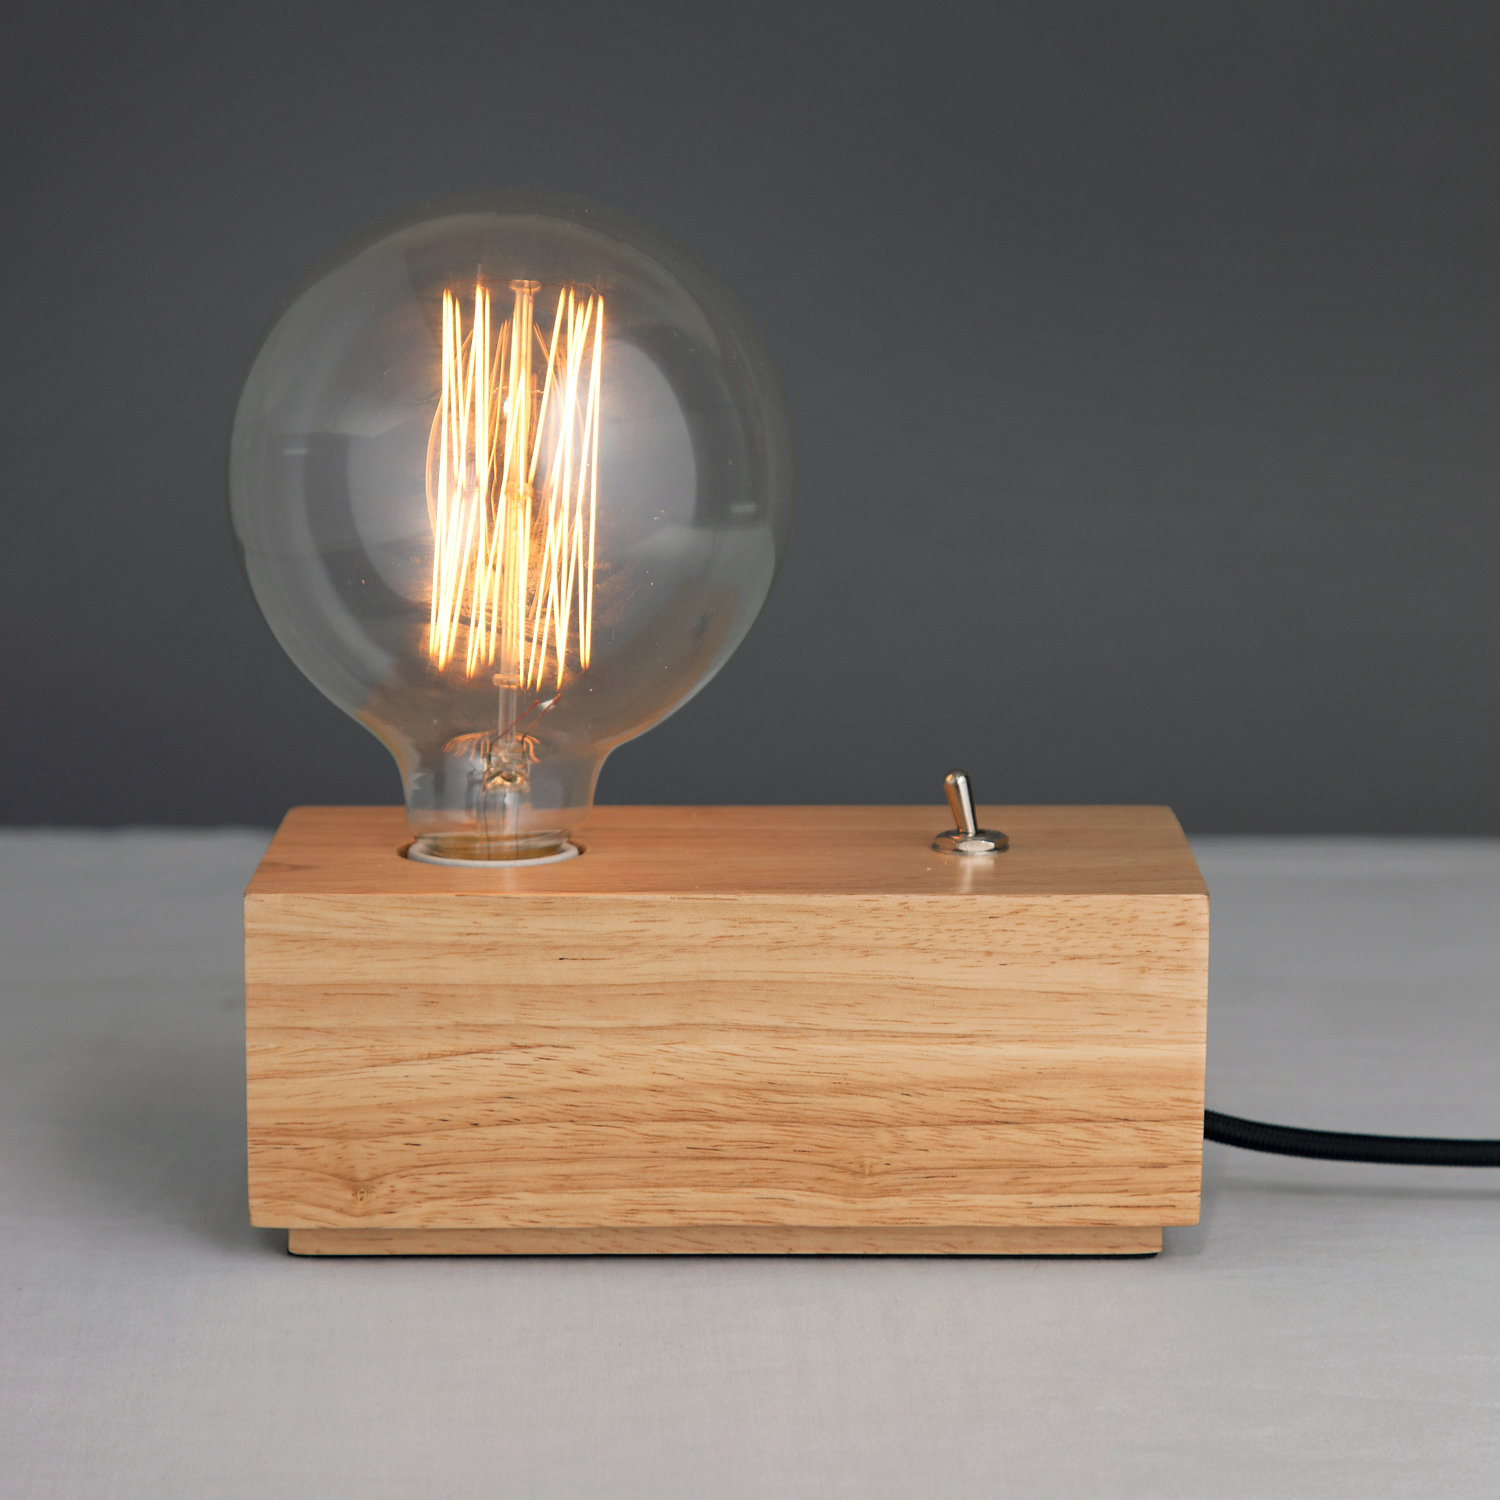 A Striking Yet Simple Table Lamp, The Vintage Flick Switch Table Lamp  Showcases A Stylish Filament Bulb For Stylish Retro Chic.